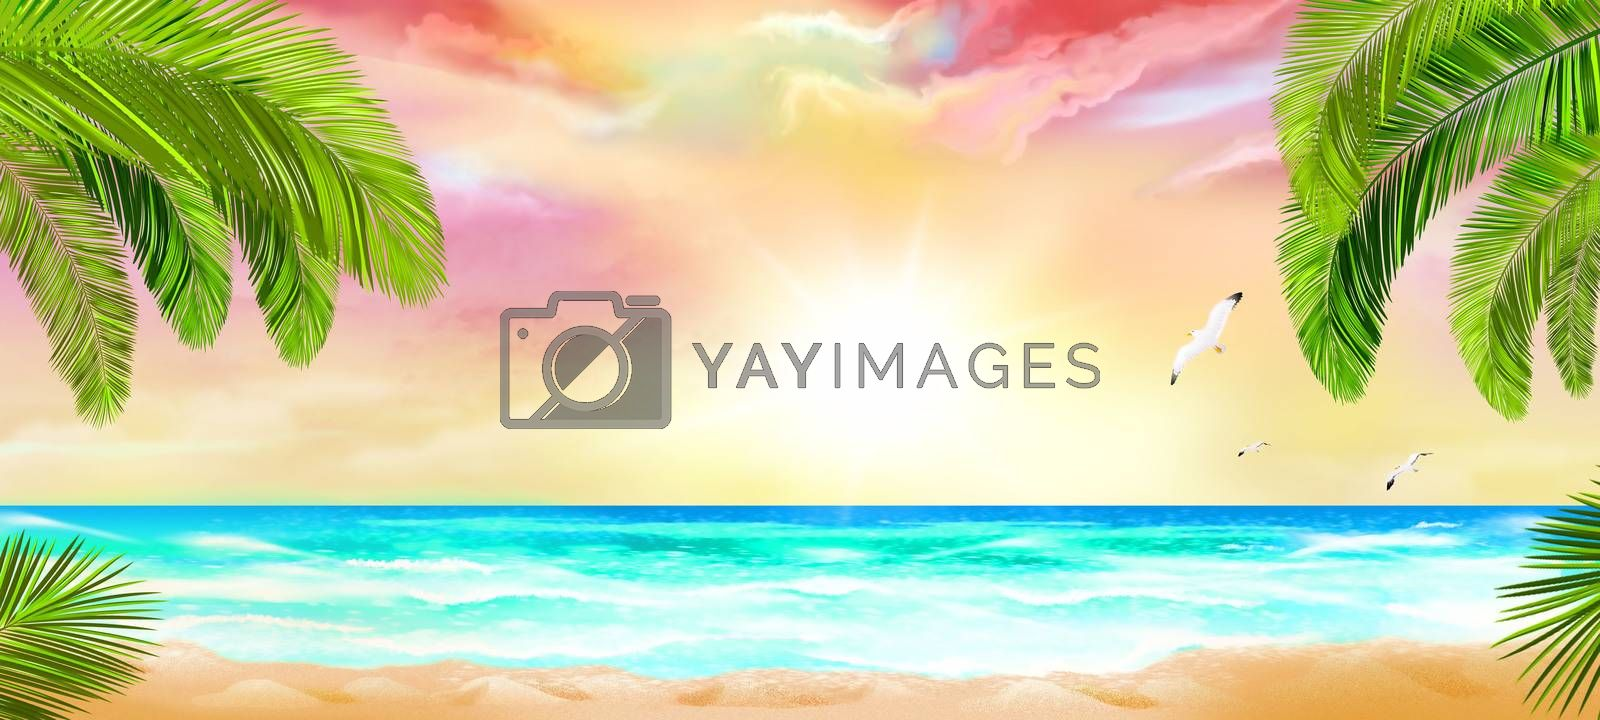 Tropical beach with palm trees and ocean view. Tropical seascape.